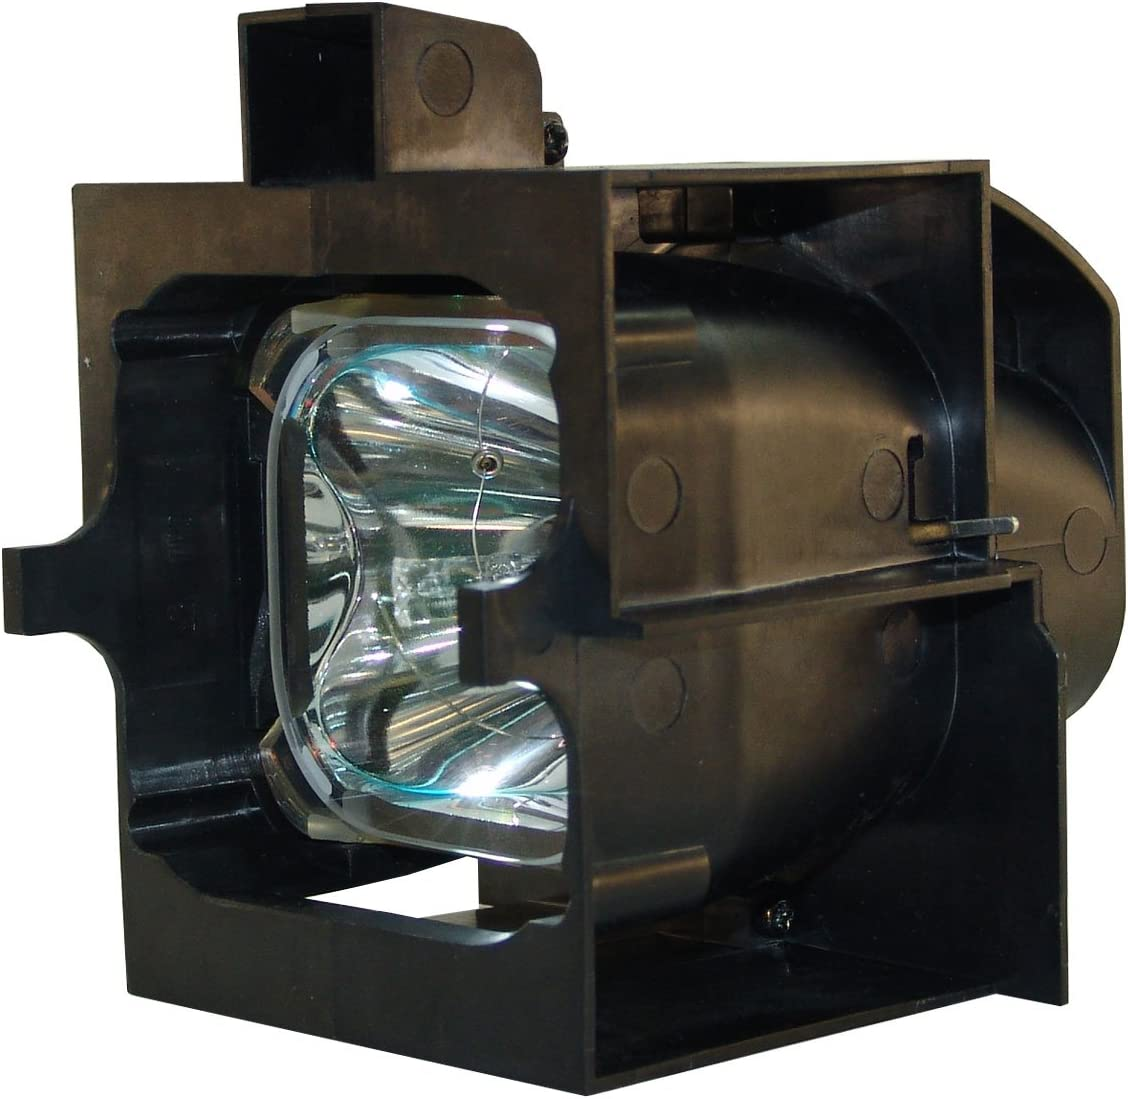 SpArc Platinum for Barco LR6 Projector Lamp with Enclosure